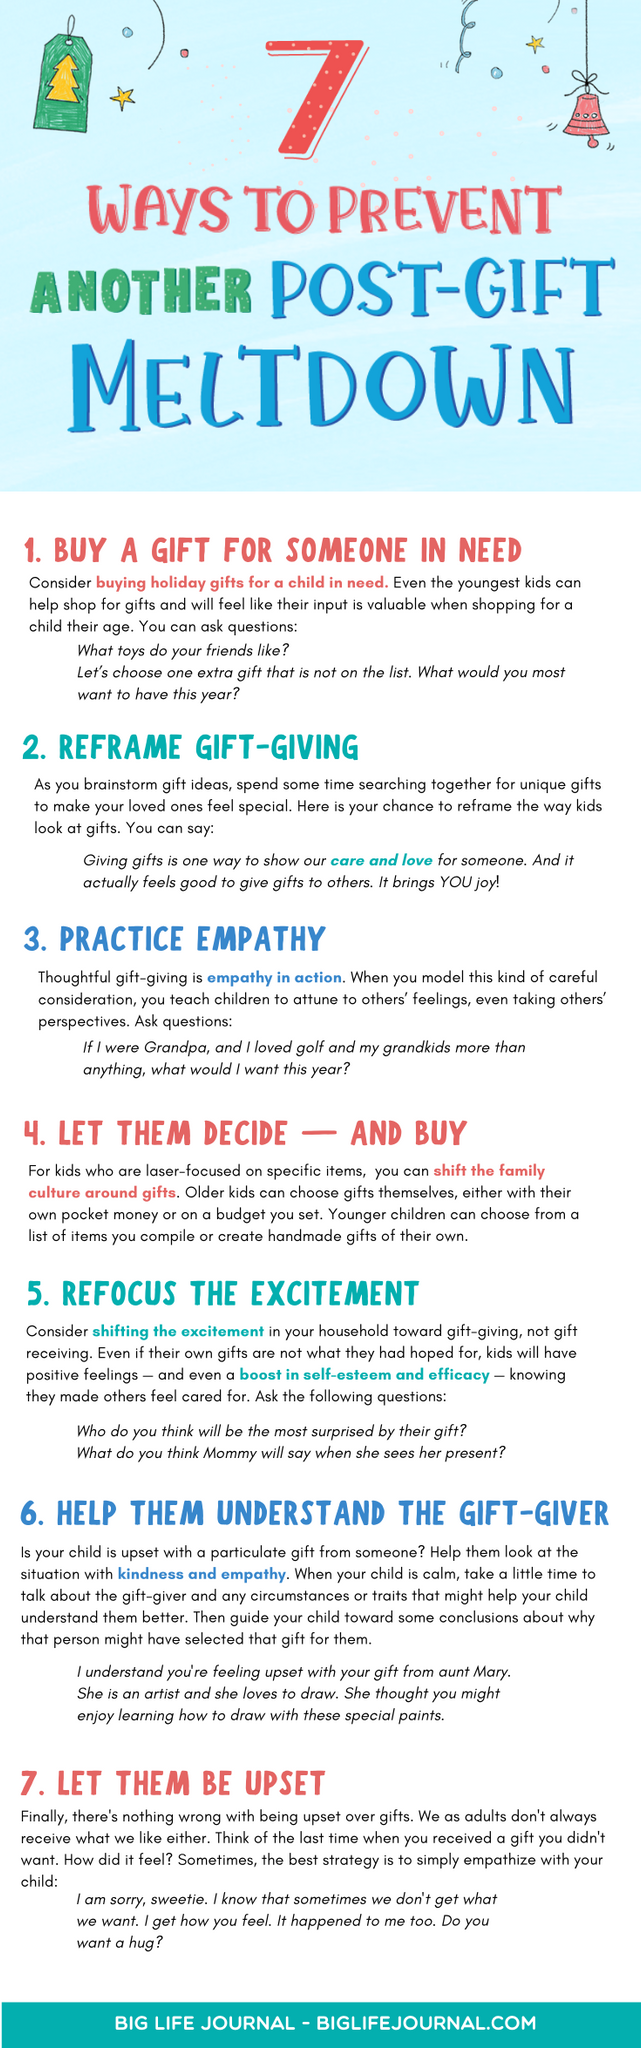 7 Ways to Prevent Another Post-Gift Meltdown